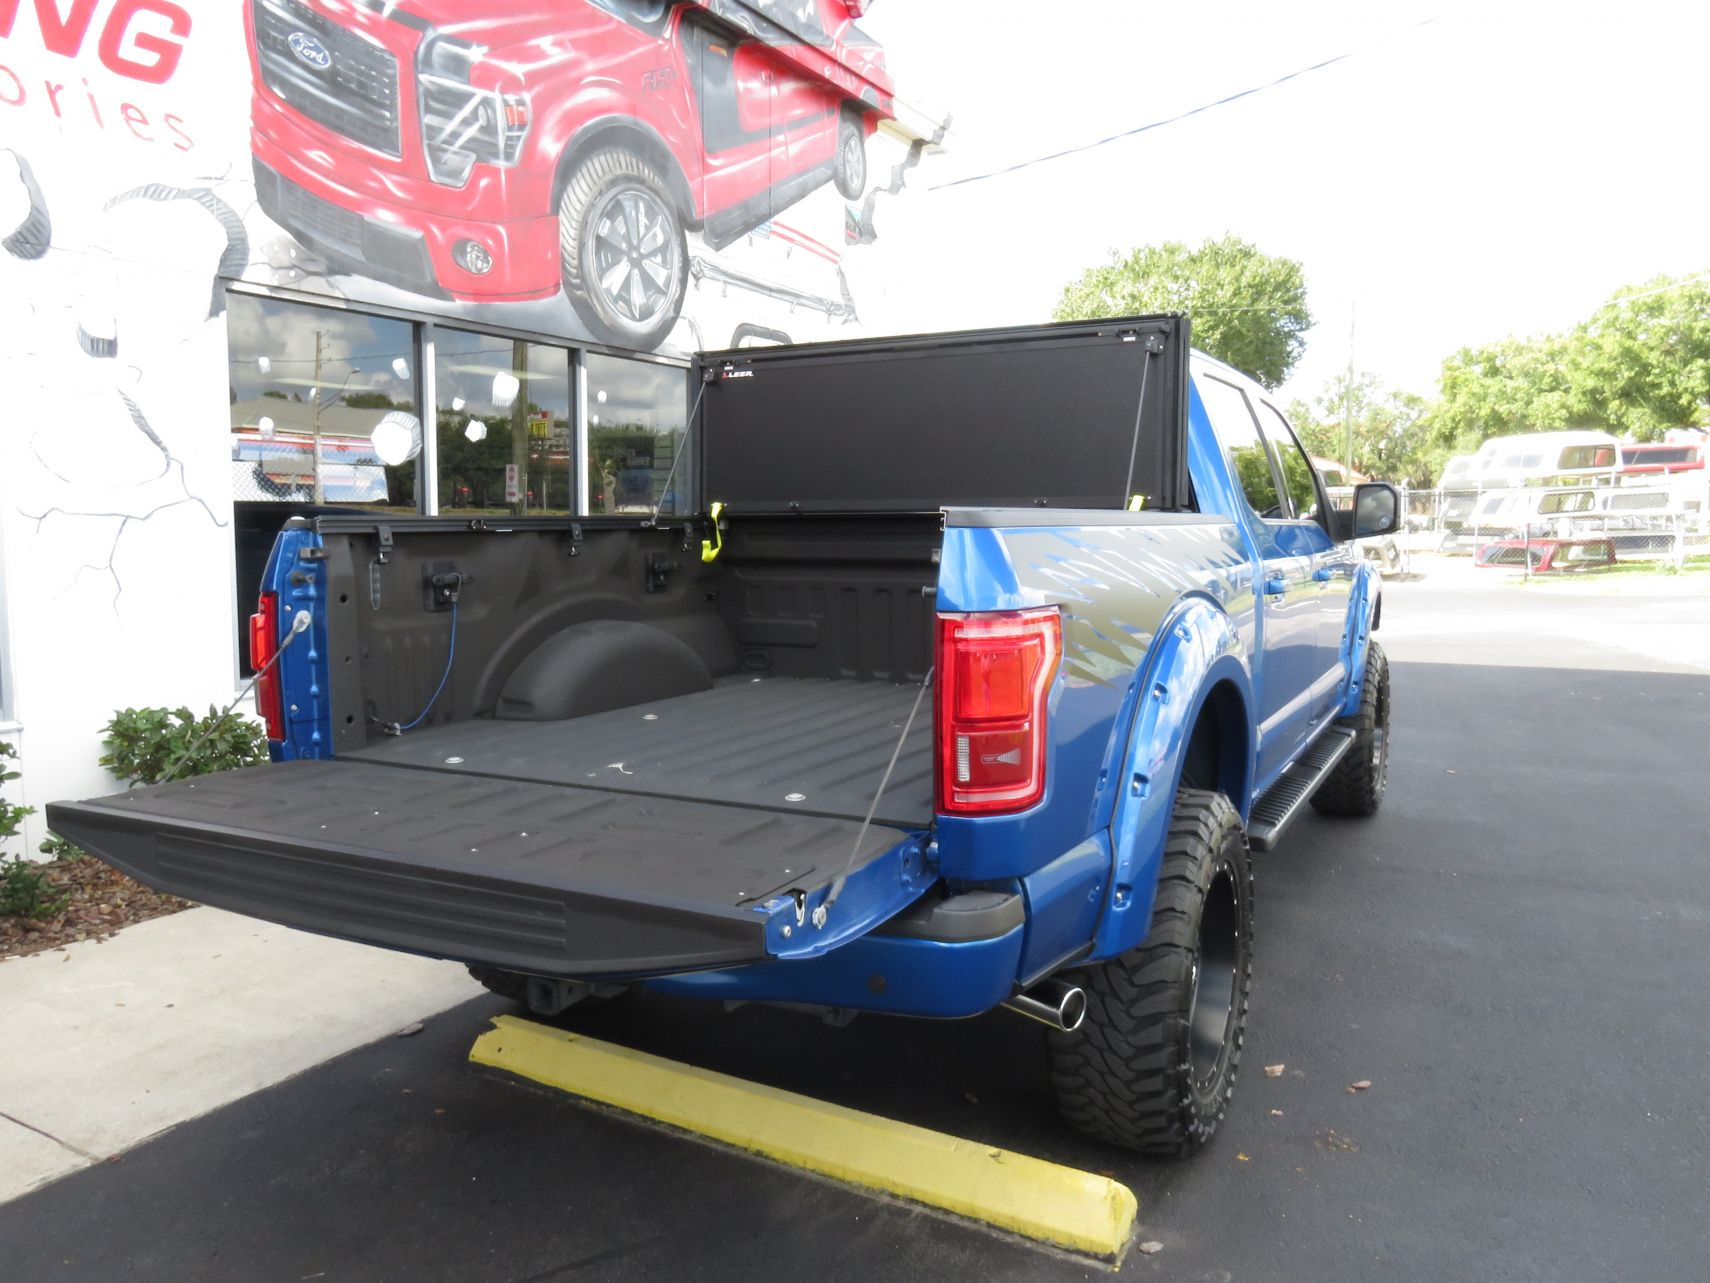 2015 Blue Ford F150 LEER 350M, Bull Bars, Custom Hitch. and more by TopperKING in Brandon, FL 813-689-2449 or Clearwater, FL 727-530-9066. Call today!